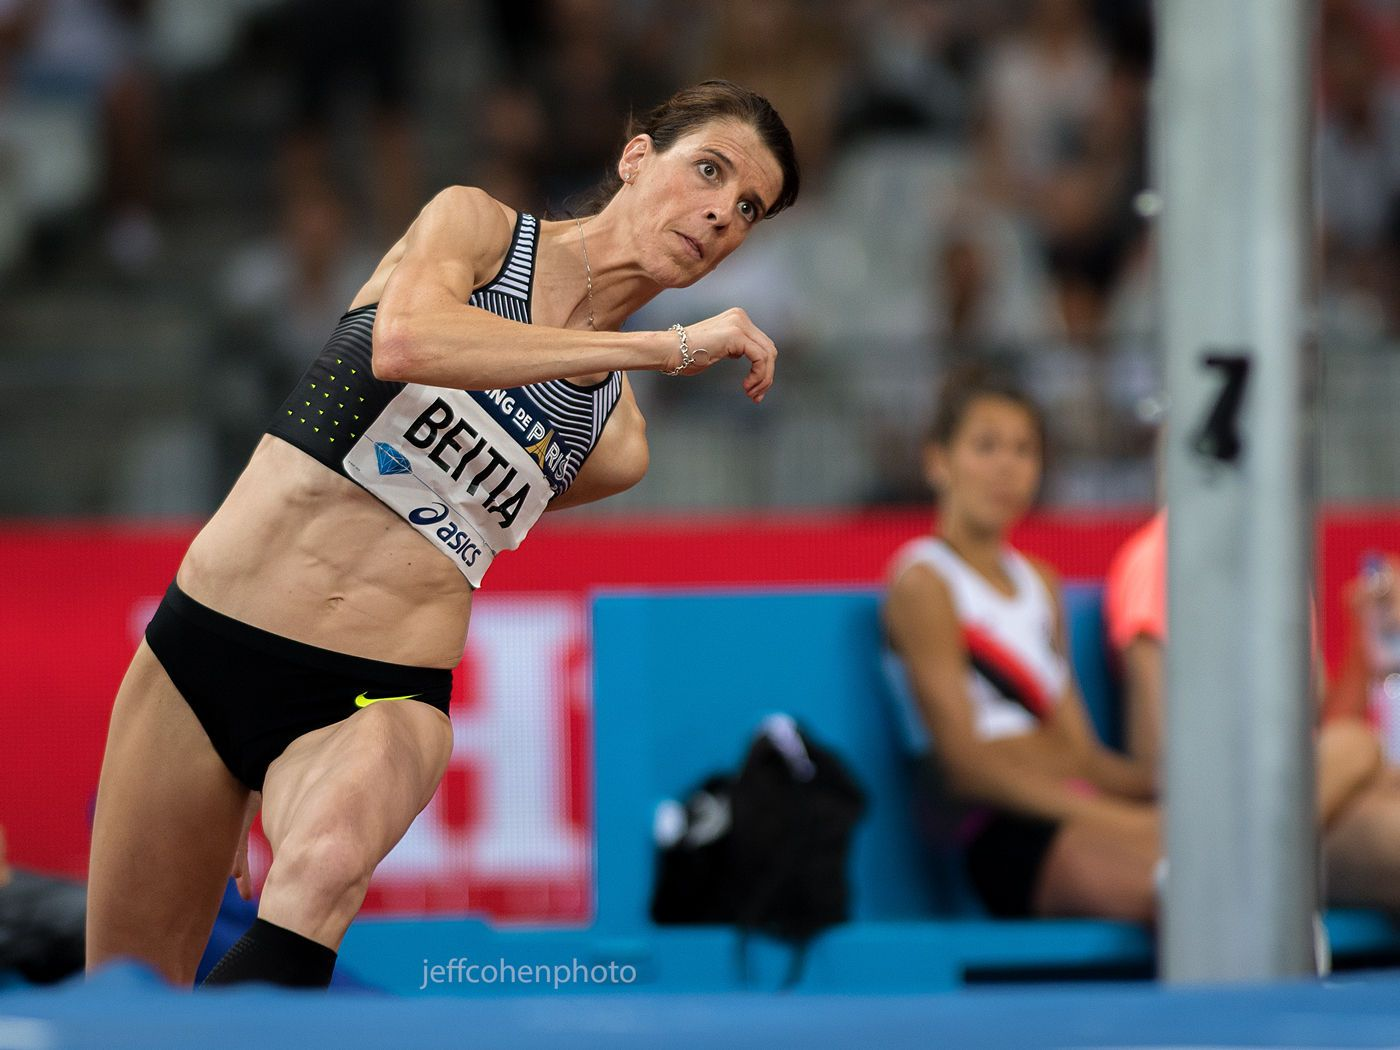 1r2016_meeting_de_paris_beitia_hjw_jeff_cohen_photo_924_web.jpg